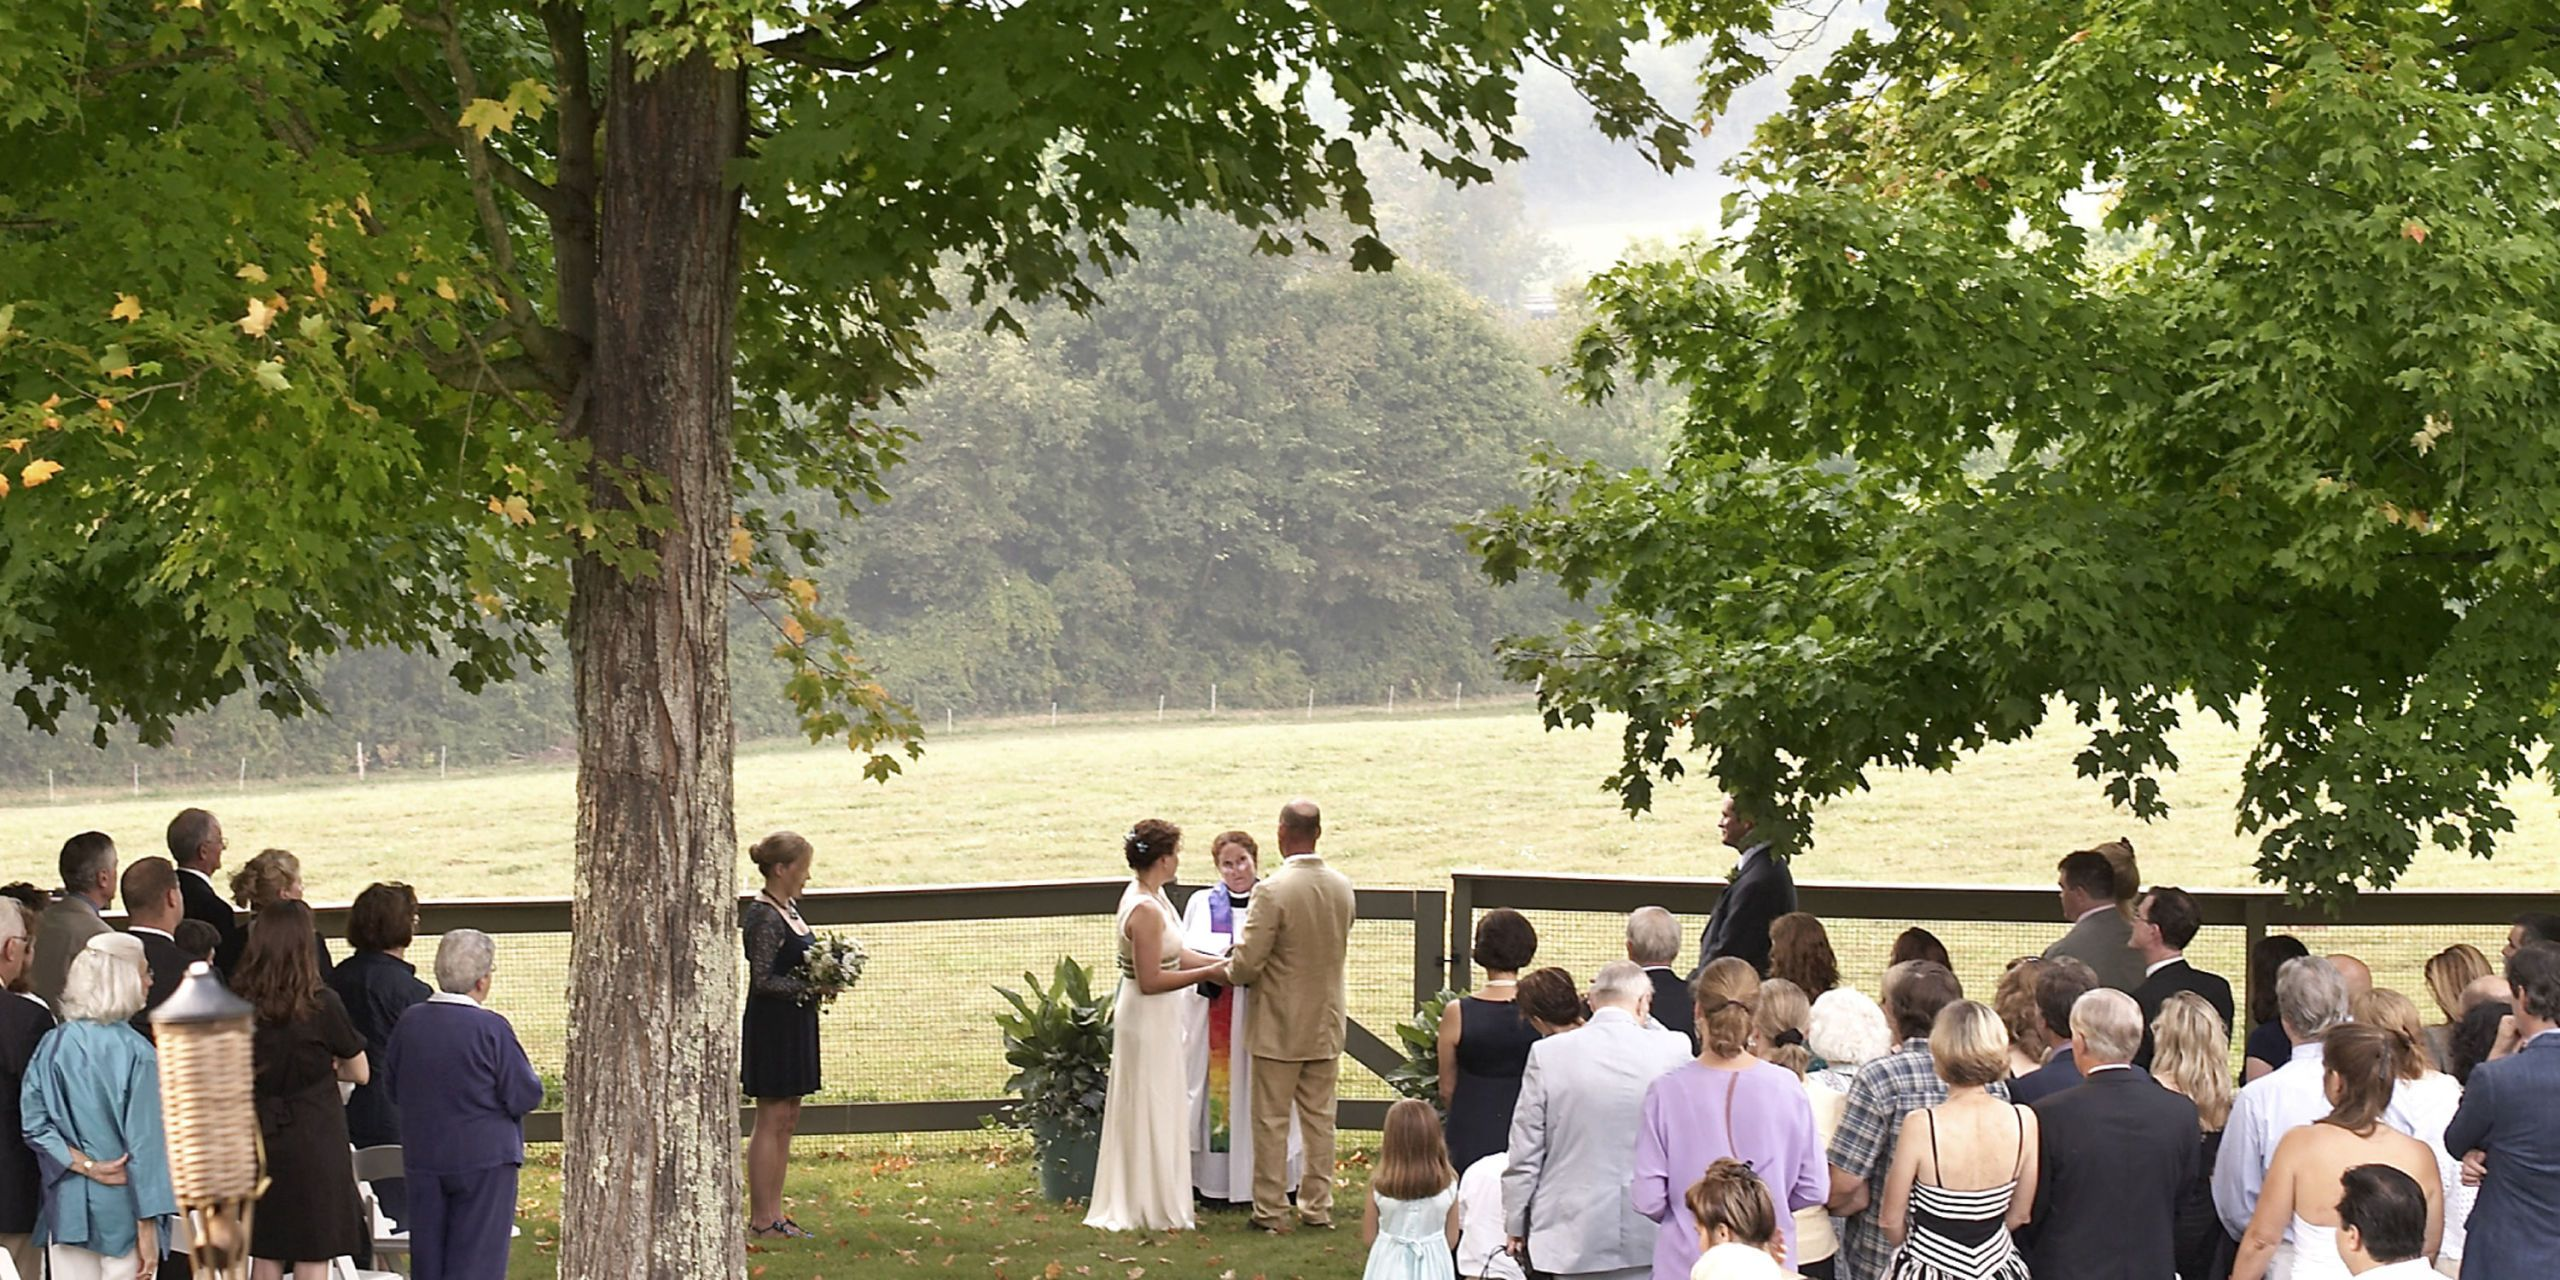 ... Farmers Who Share Close Ties To The Land Made A Commitment One  Afternoon To Their Love And Their Community, With A Wedding As Natural As  The Outdoors.